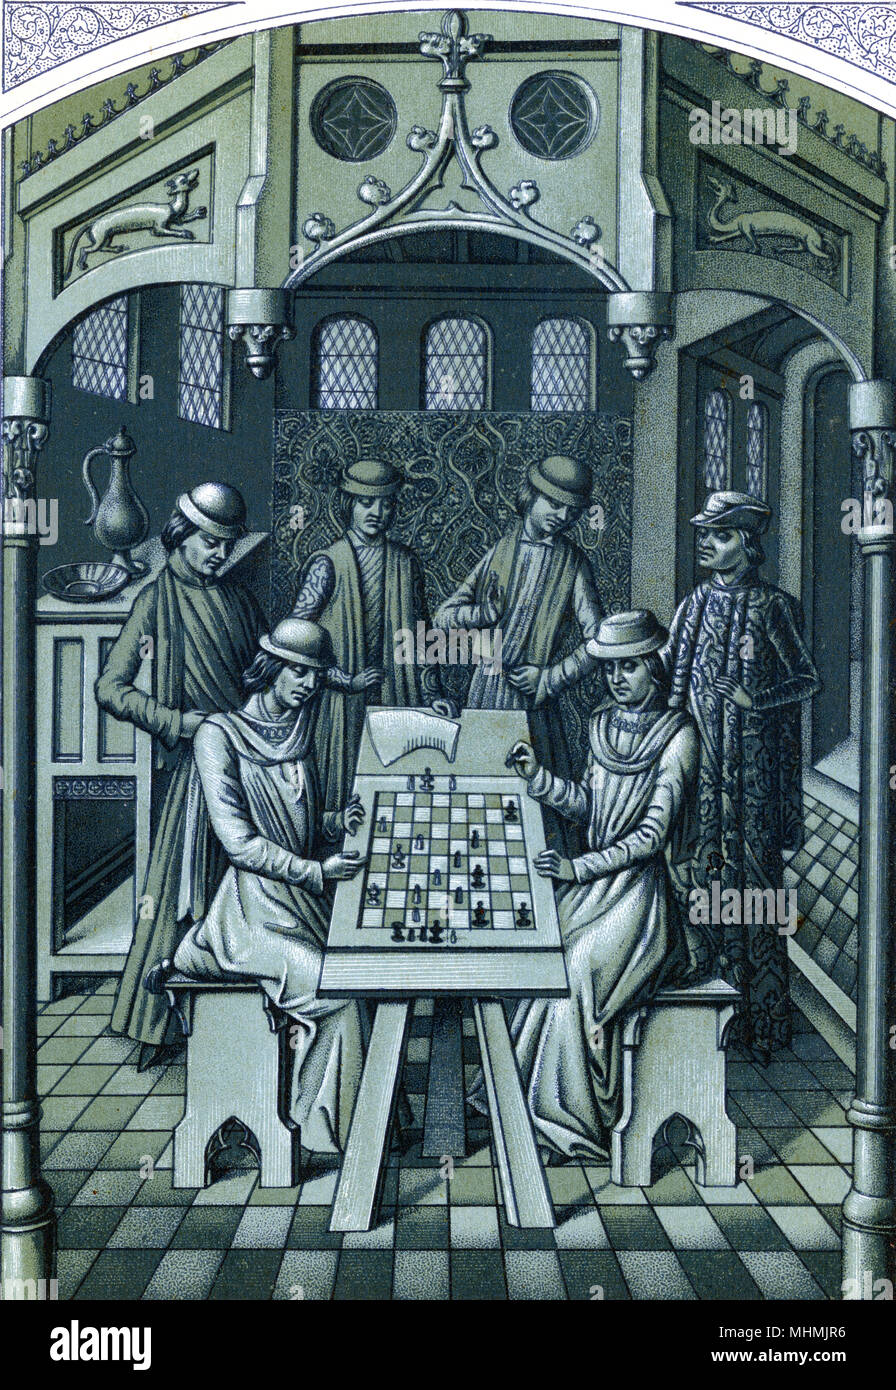 King Louis XI of France - that's him on the right - plays chess at his chateau of Plessis-les- Tours      Date: circa 1480 - Stock Image